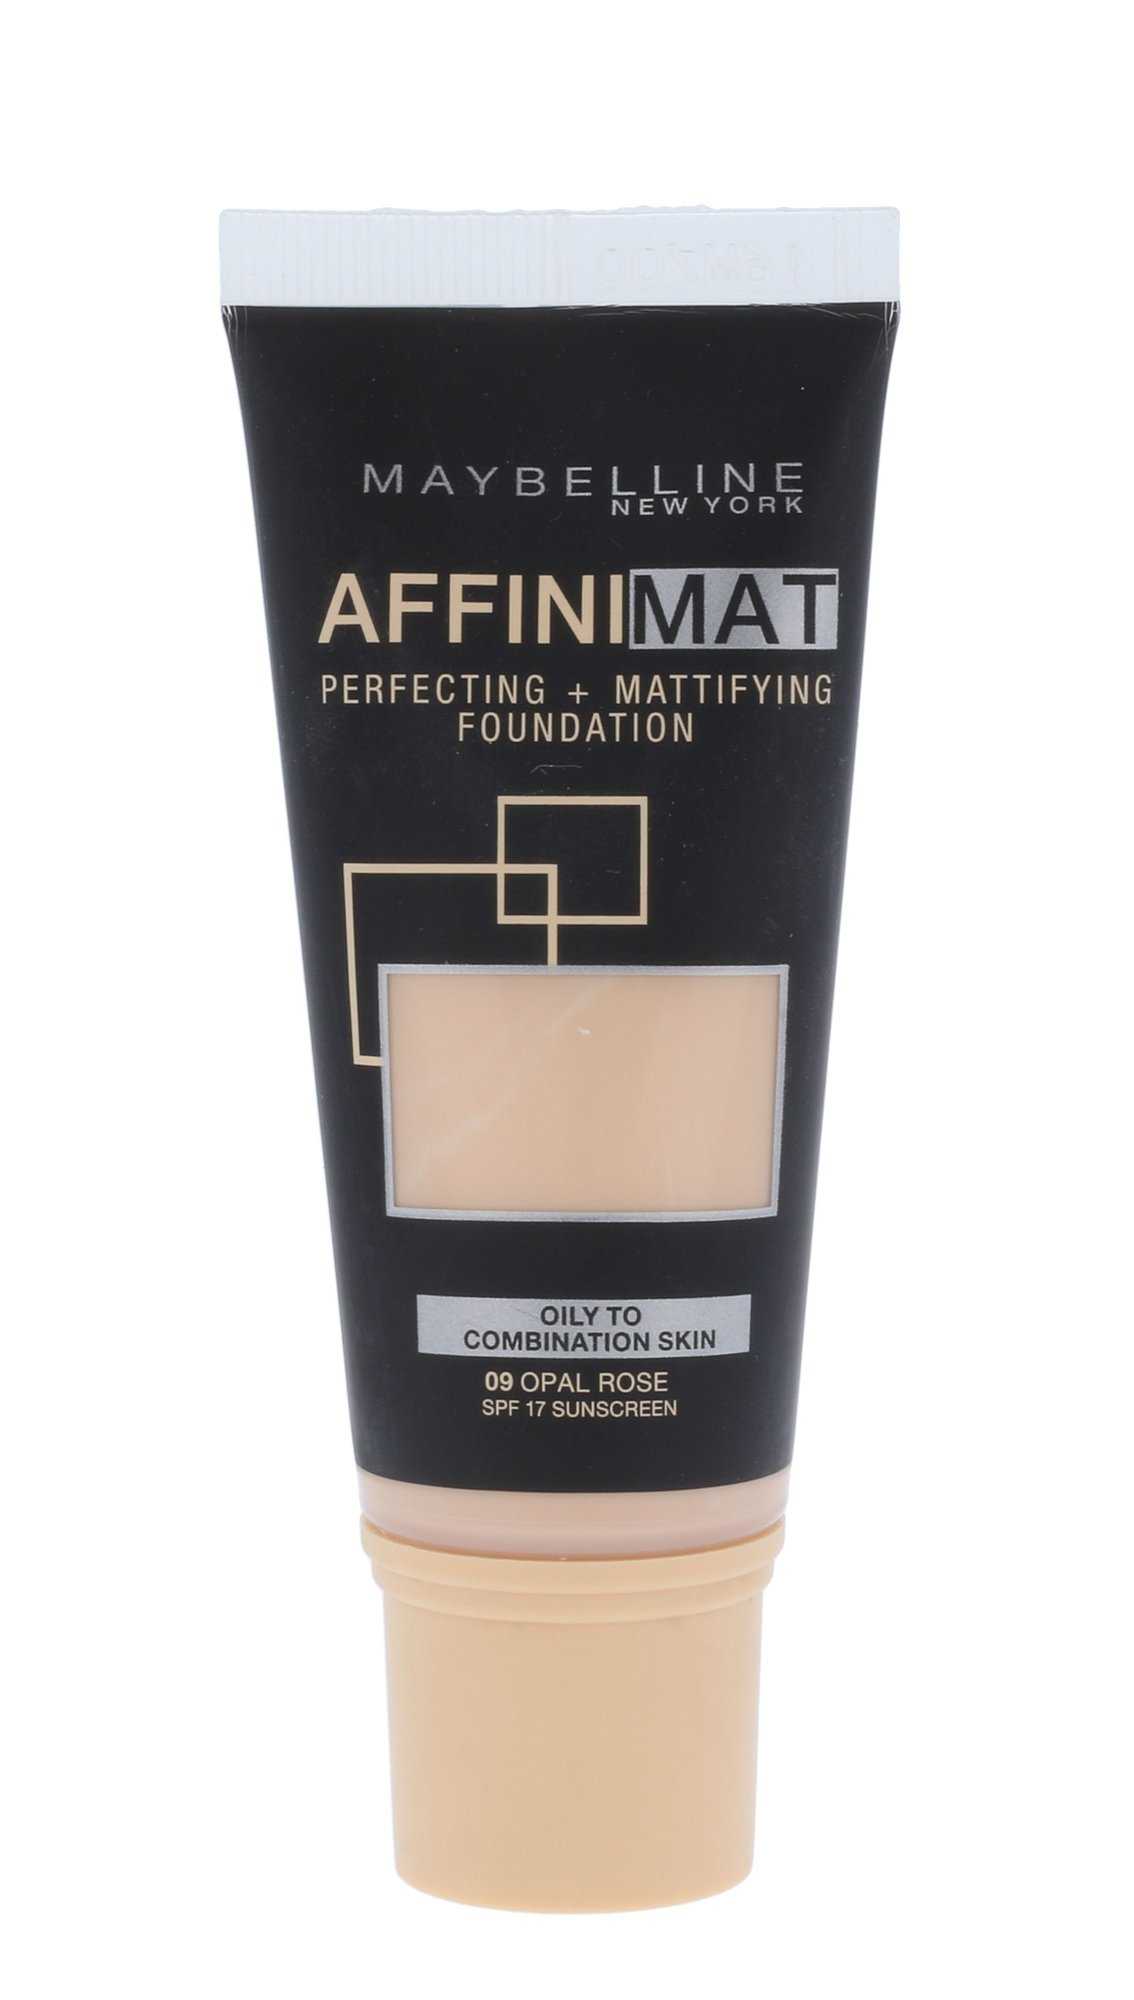 Maybelline Affinimat Cosmetic 30ml 09 Opal Rose